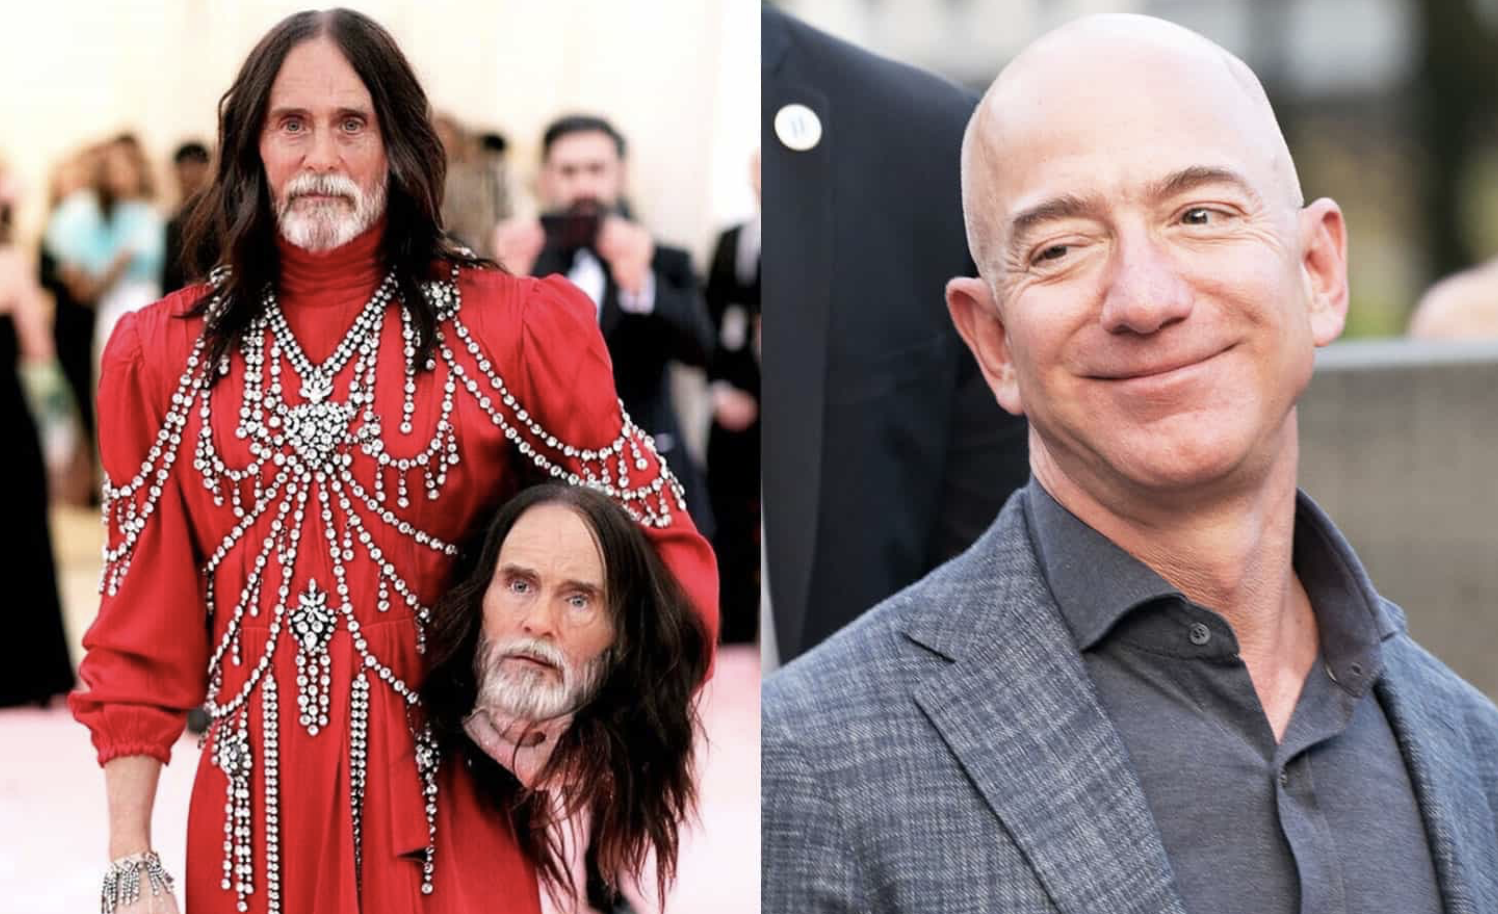 FaceApp's Worrisome Russia Connection, EU Investigates Amazon -